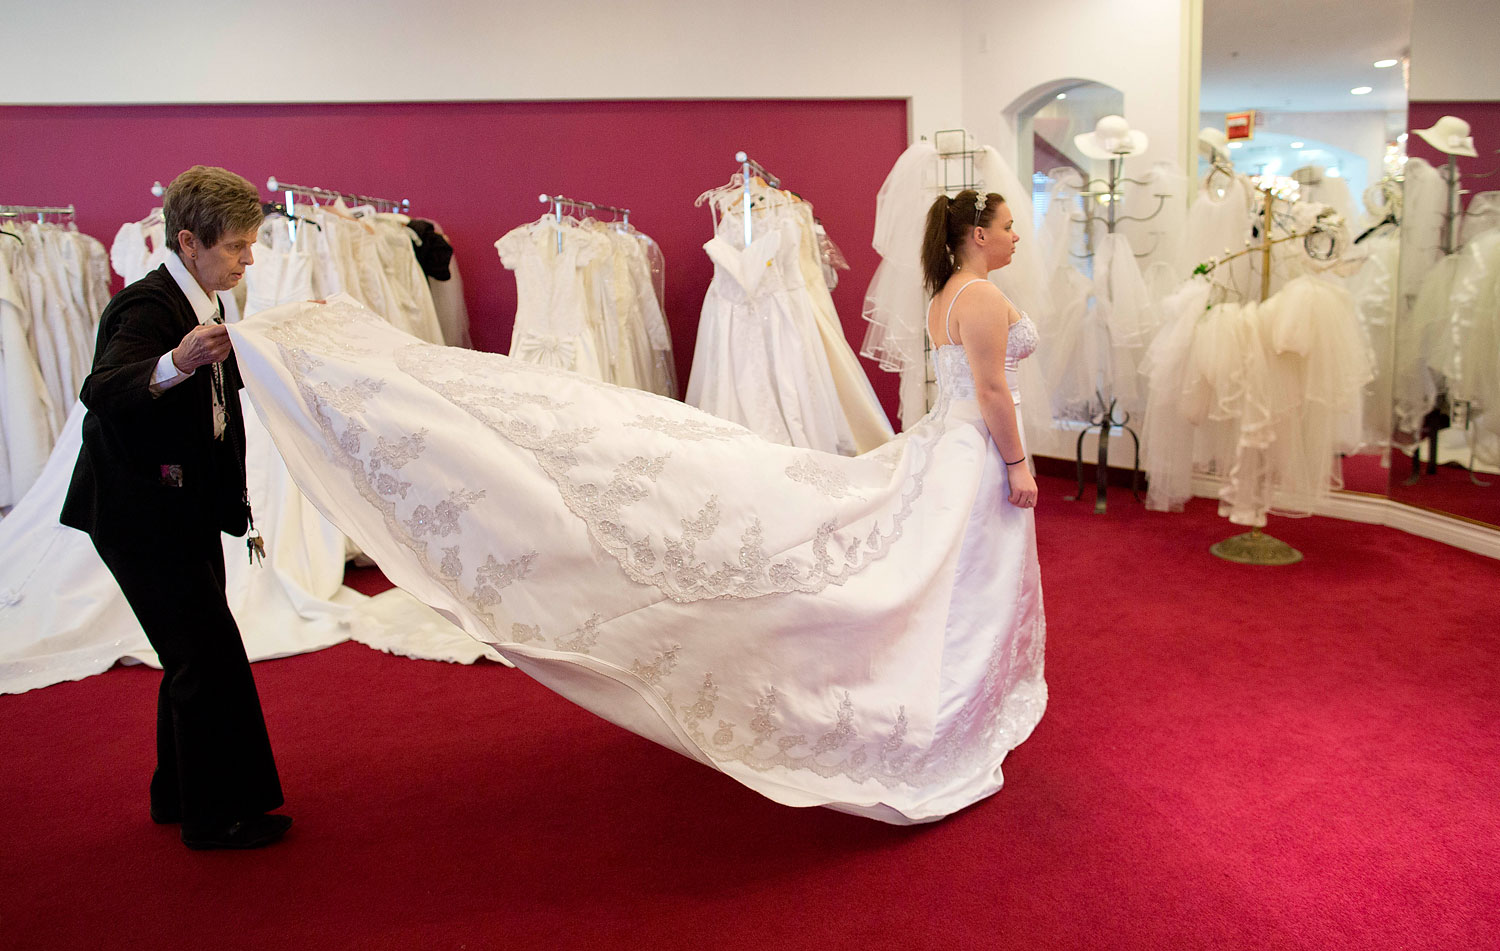 image: Bethany Wood, of Jackson, Mich., tries on a wedding gown before being married in Las Vegas.